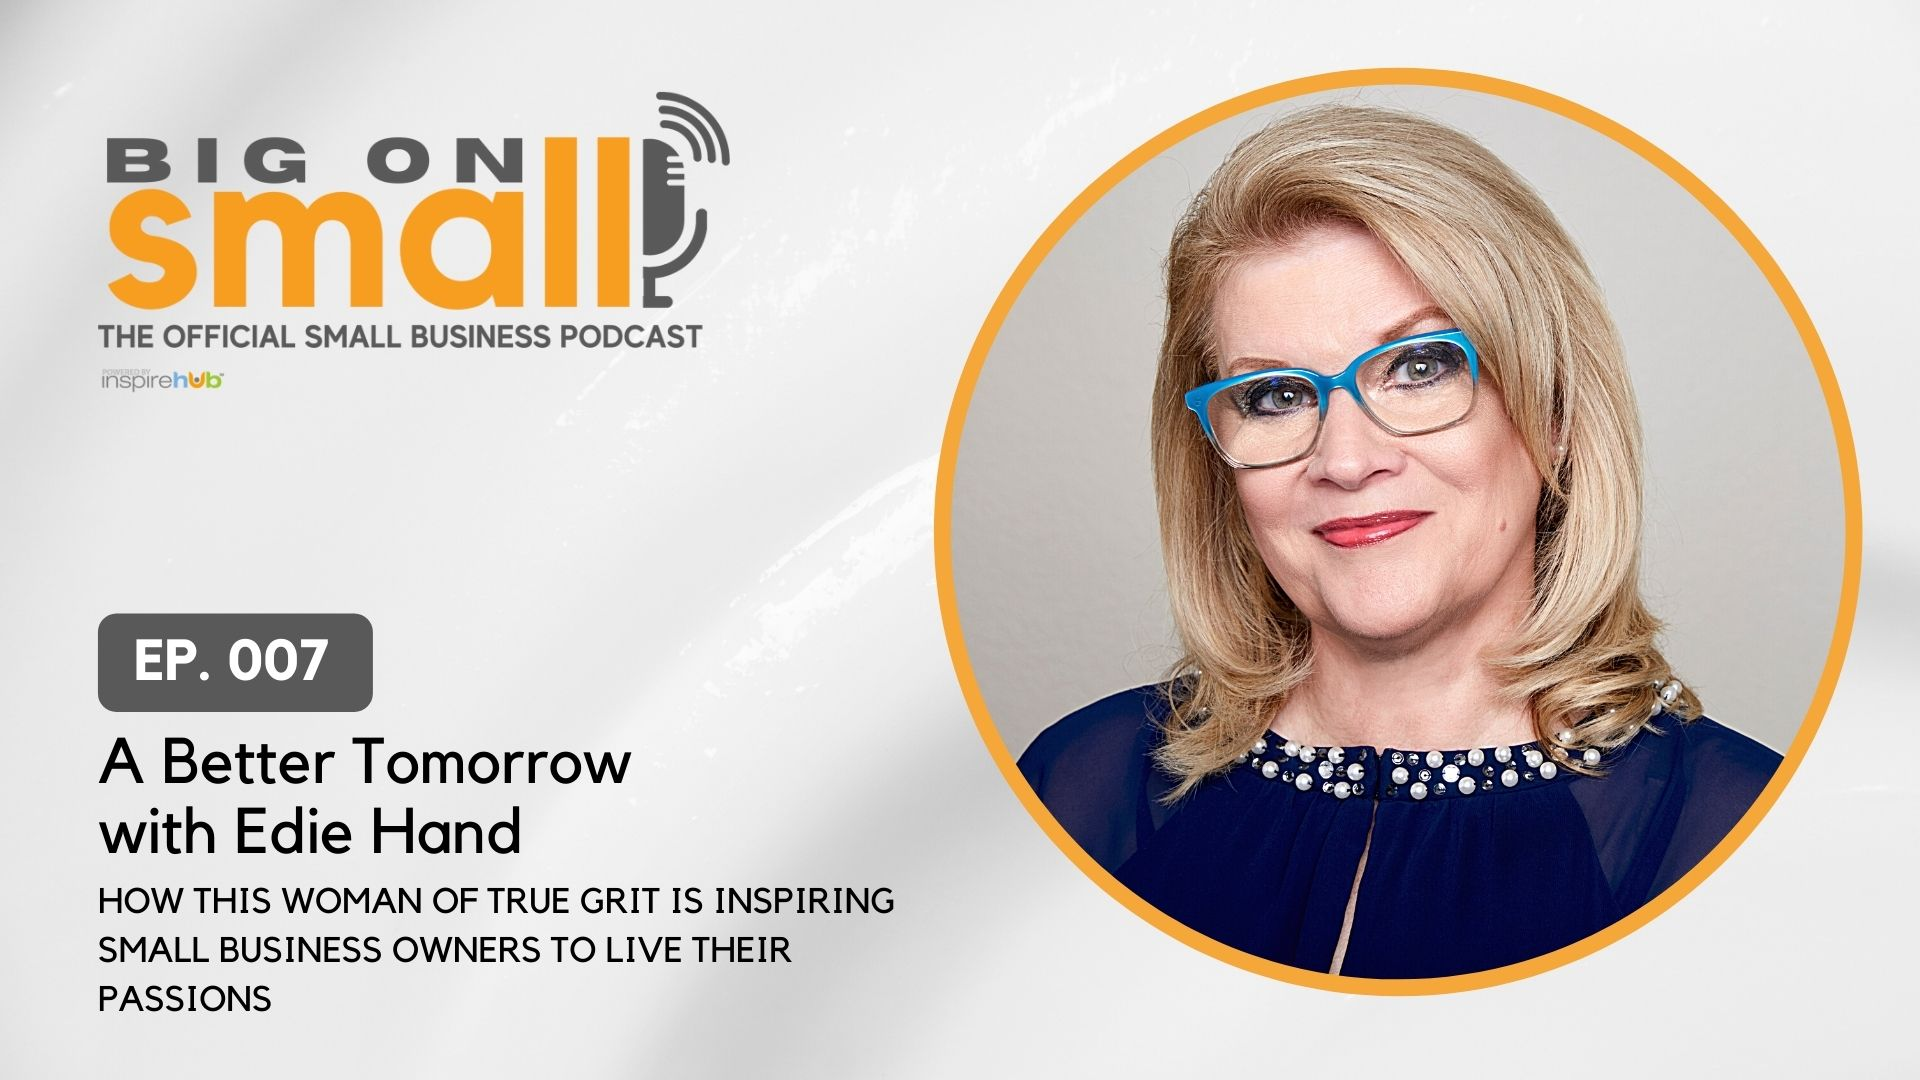 Edie Hand knows a thing or two about small businesses and true grit and shares them in Big on Small podcast episode 7.